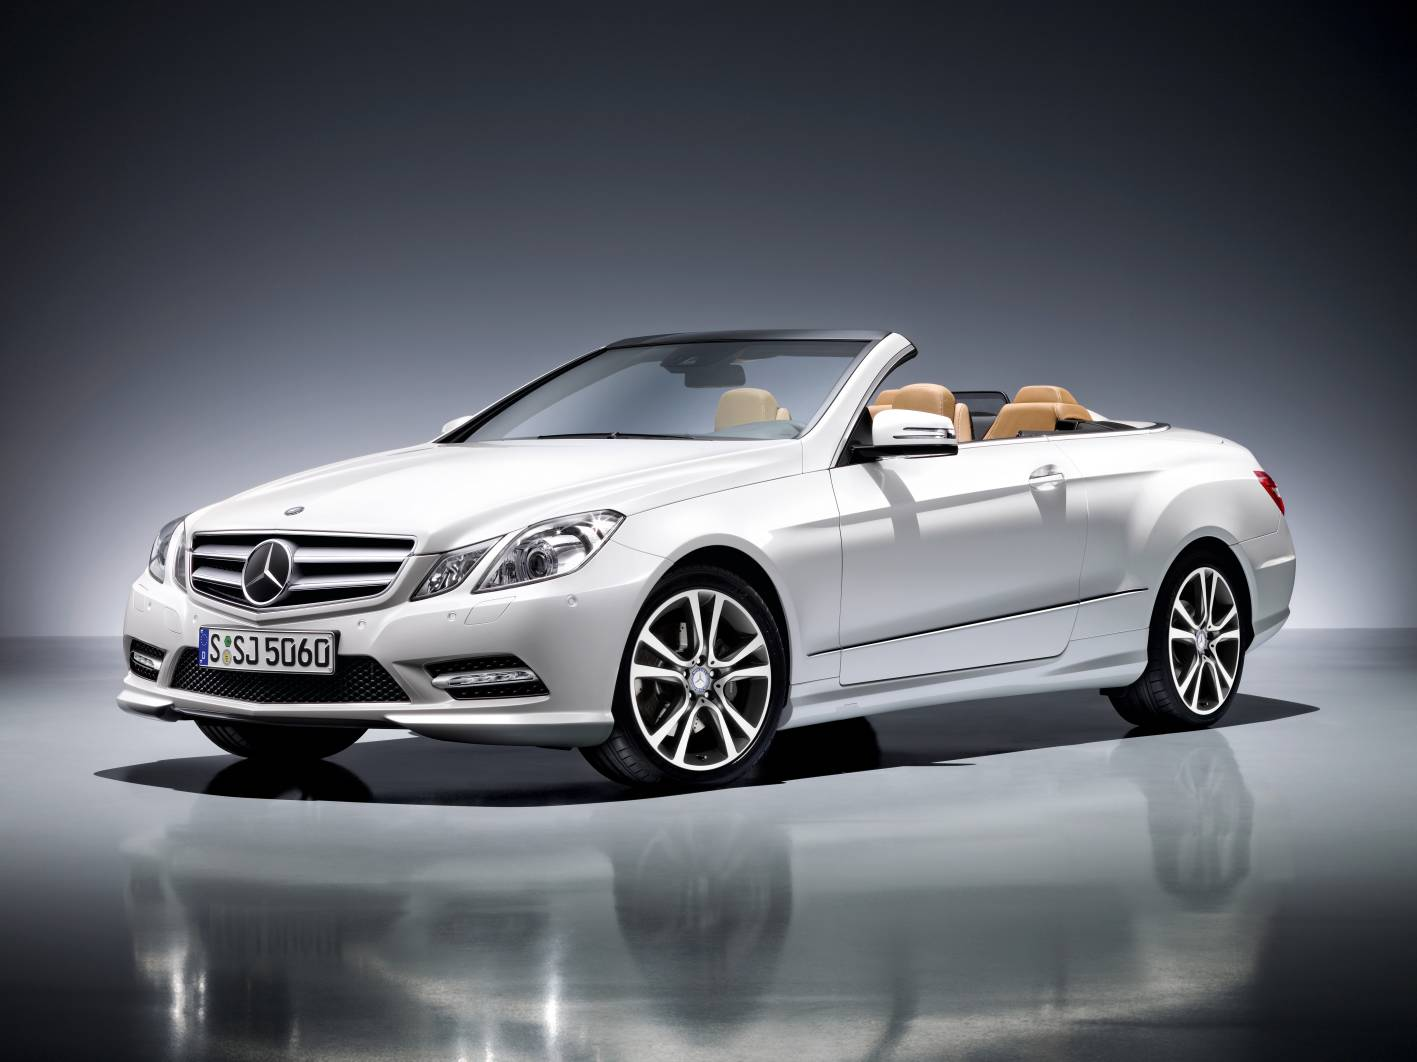 Mercedes Benz C Class And E Class Sport Variants Now On